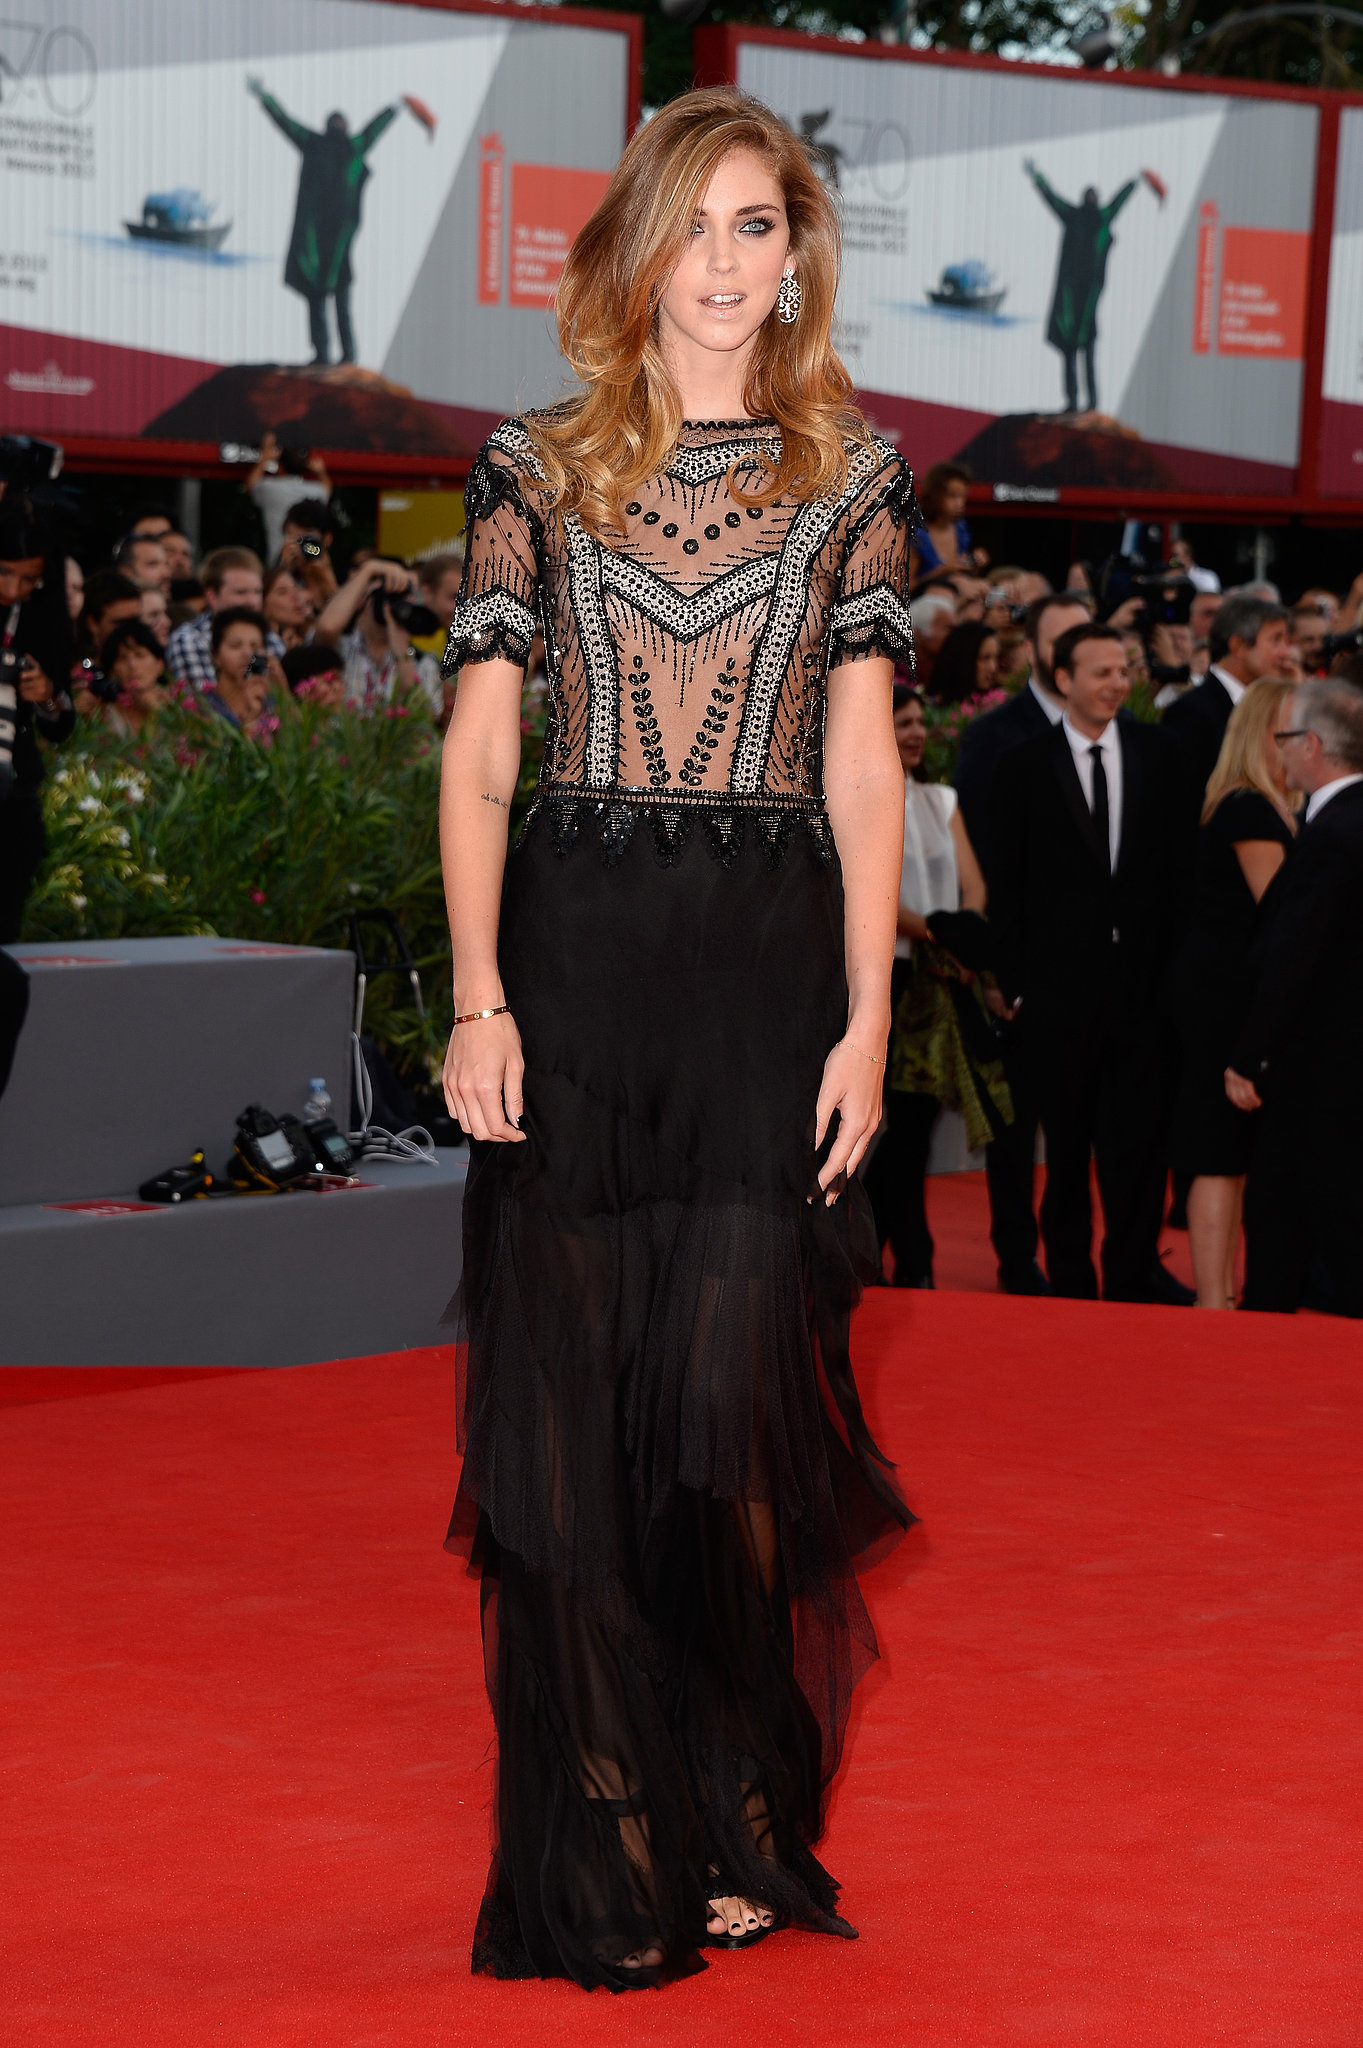 Chiara Ferragni sparkled in a drop-waist style on the Venice Film Festival Gravity red carpet.